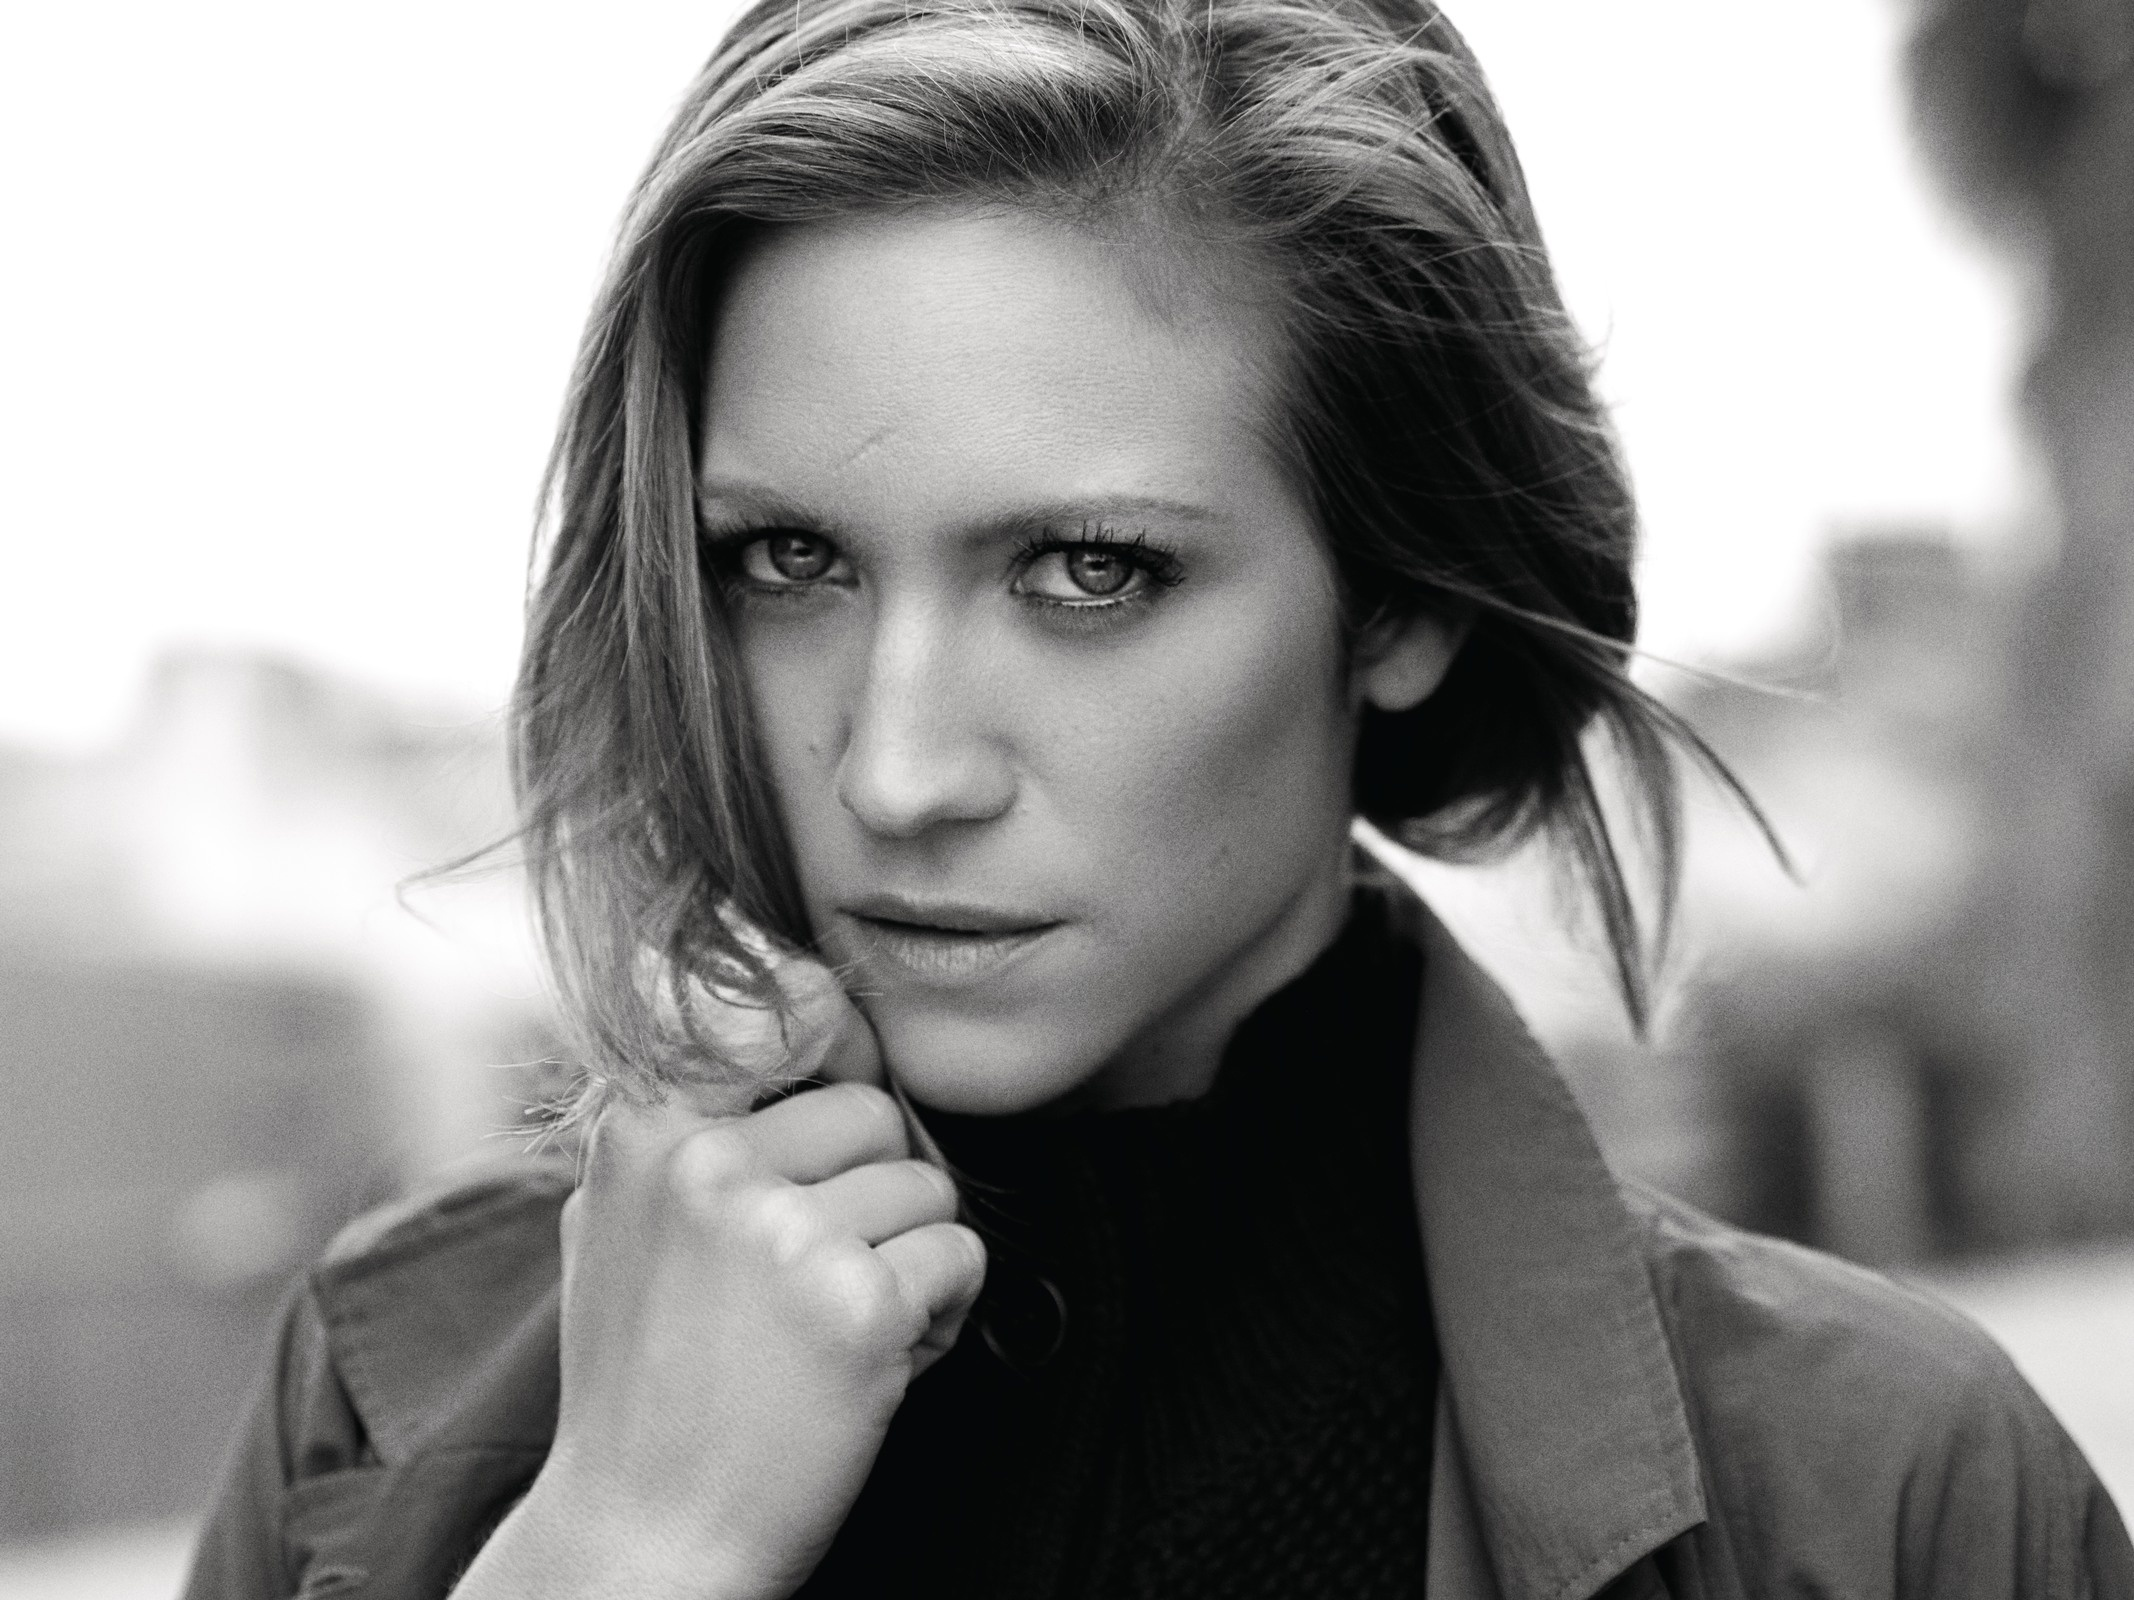 2134x1600 - Brittany Snow Wallpapers 1